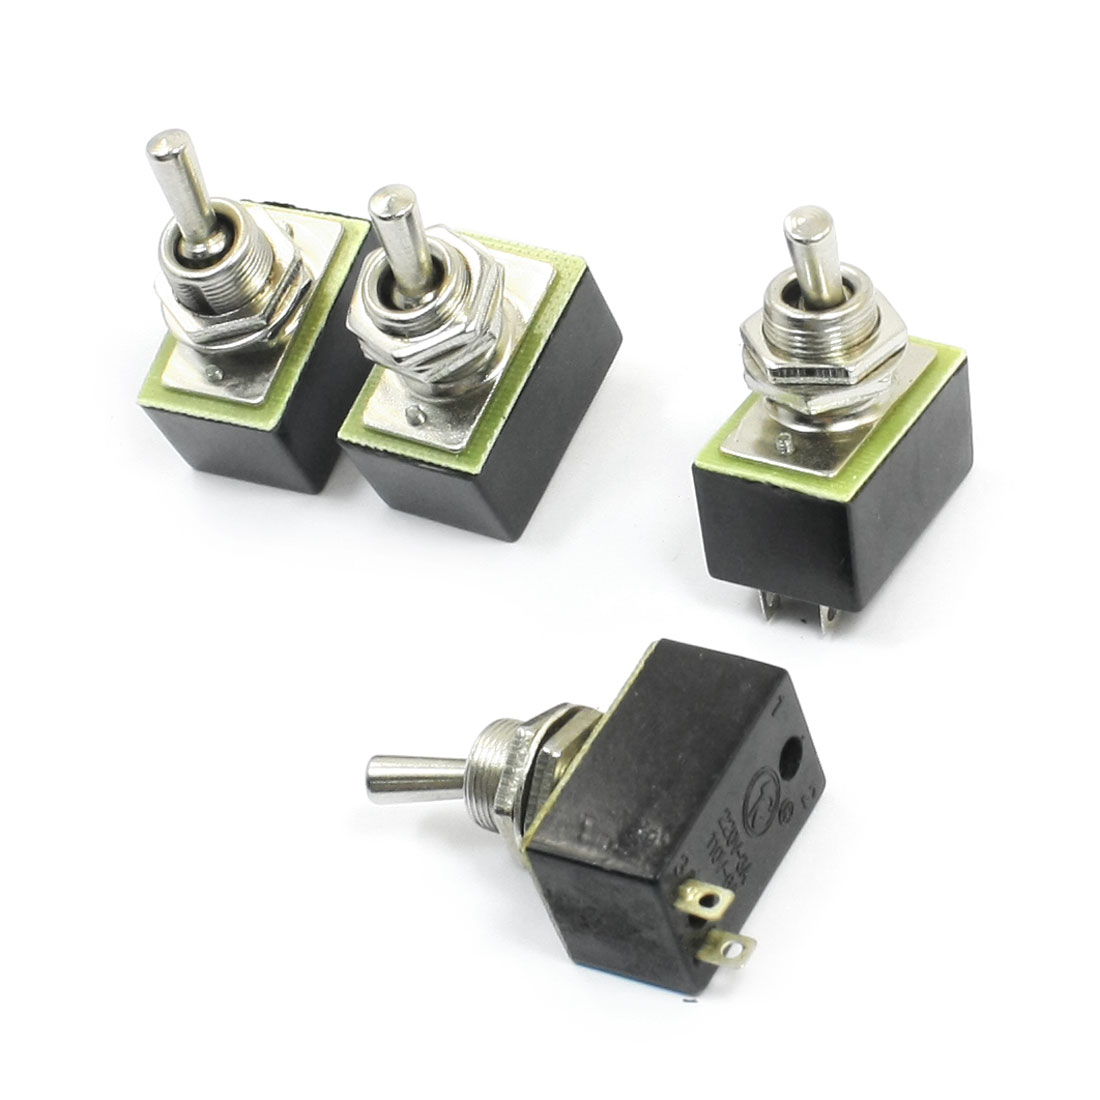 Spare Parts AC 110V 6A ON/OFF 2 Positions 2 Pin Toggle Switch KN3A 1X1 4pcs